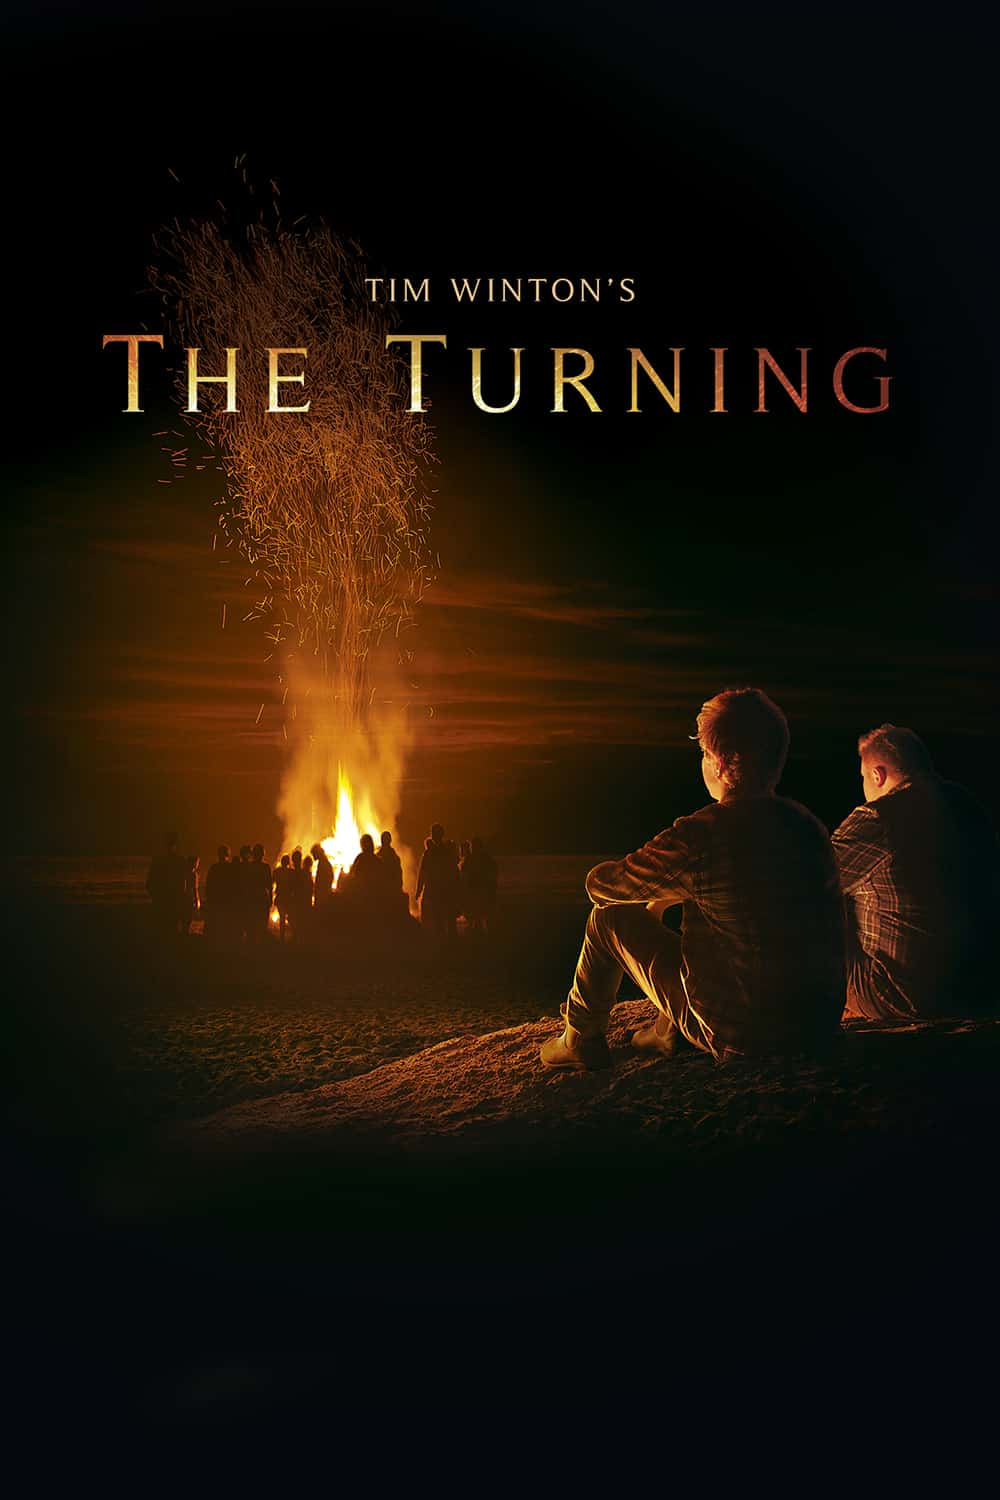 The Turning, 2013